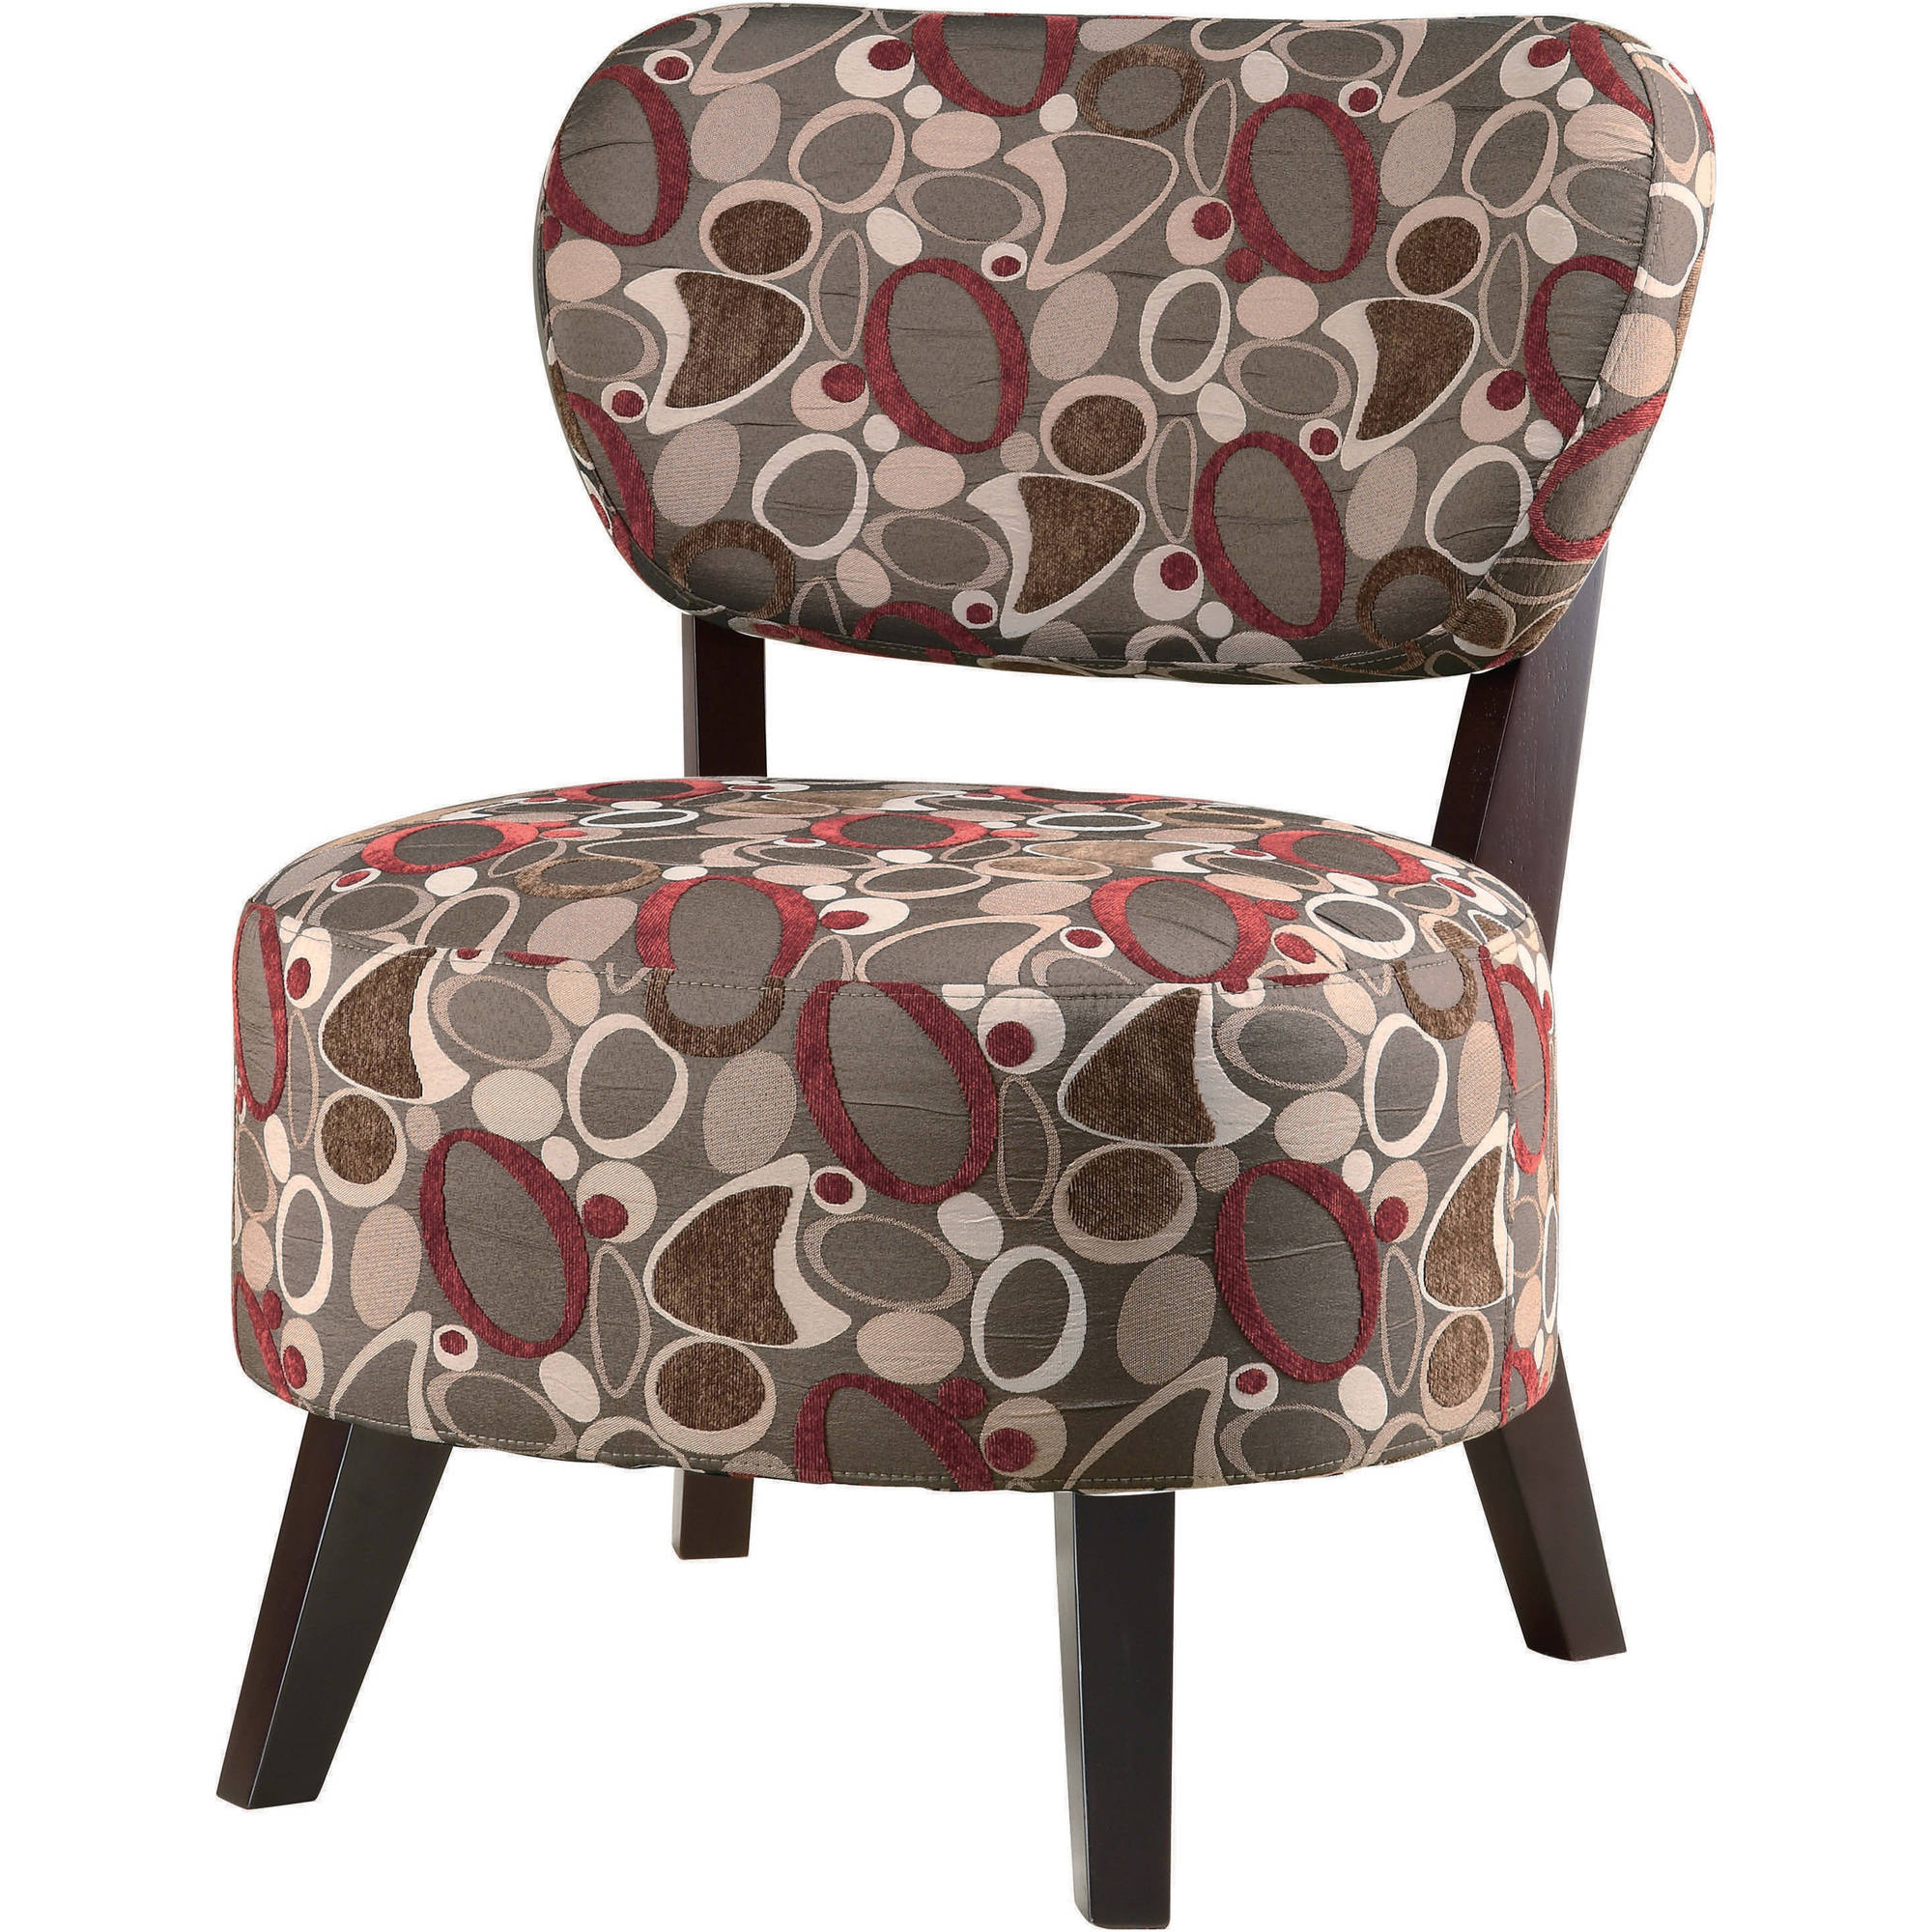 Coaster Company Accent Chair, Red Brown, Dark Brown by Coaster Company